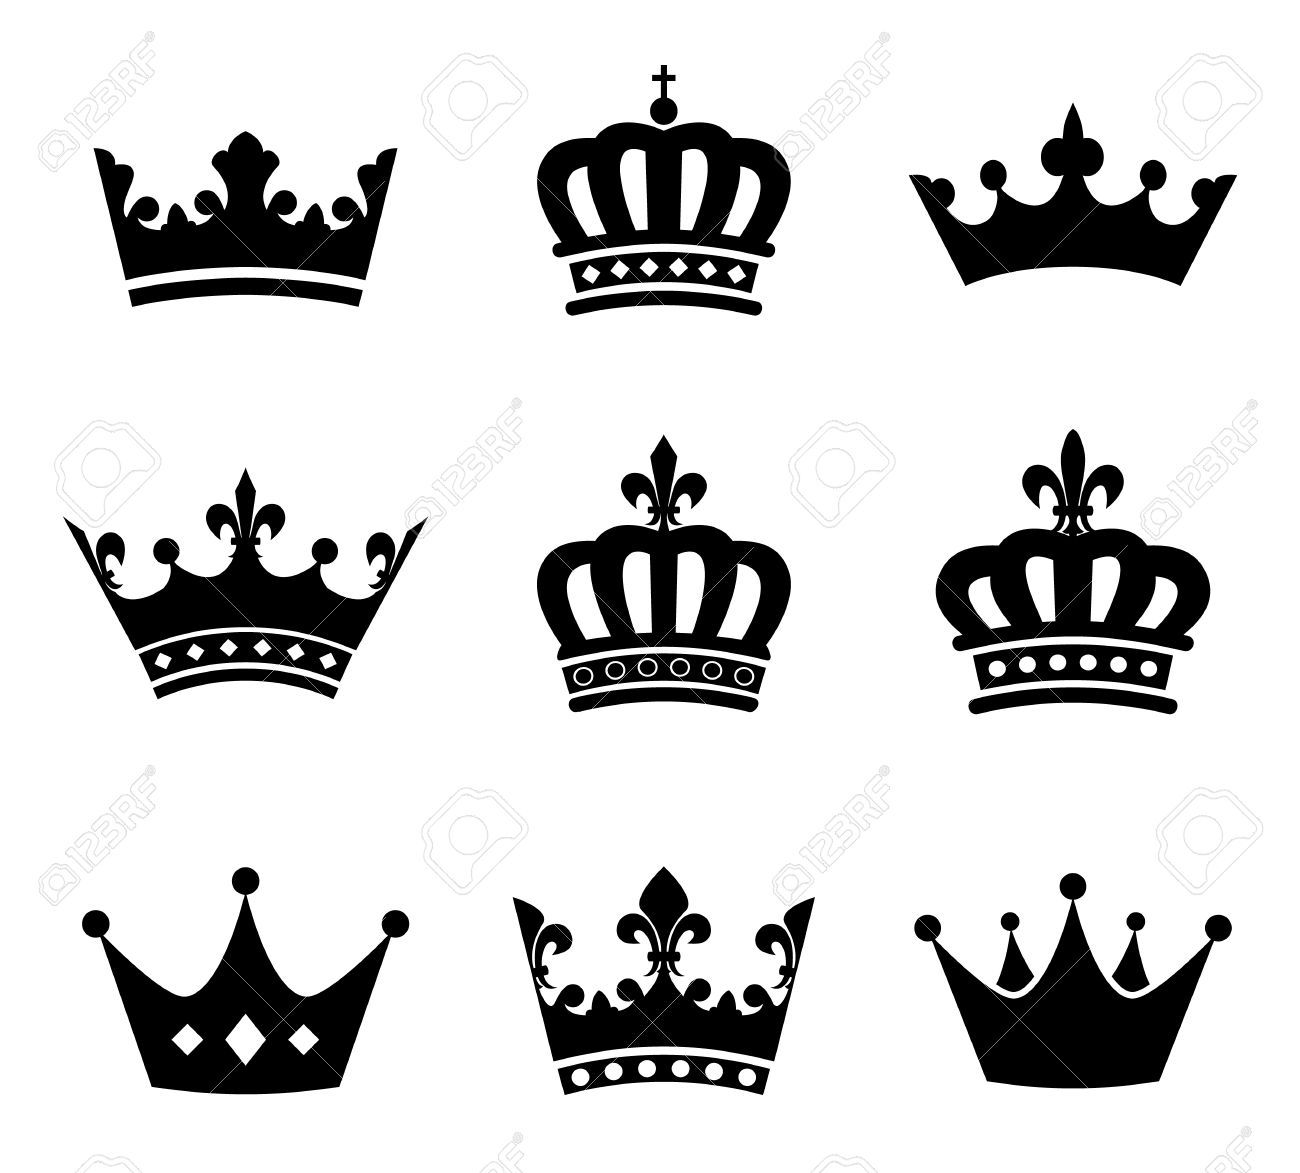 Crown illustration clipart svg transparent Heraldic Crown Stock Illustrations, Cliparts And Royalty Free ... svg transparent